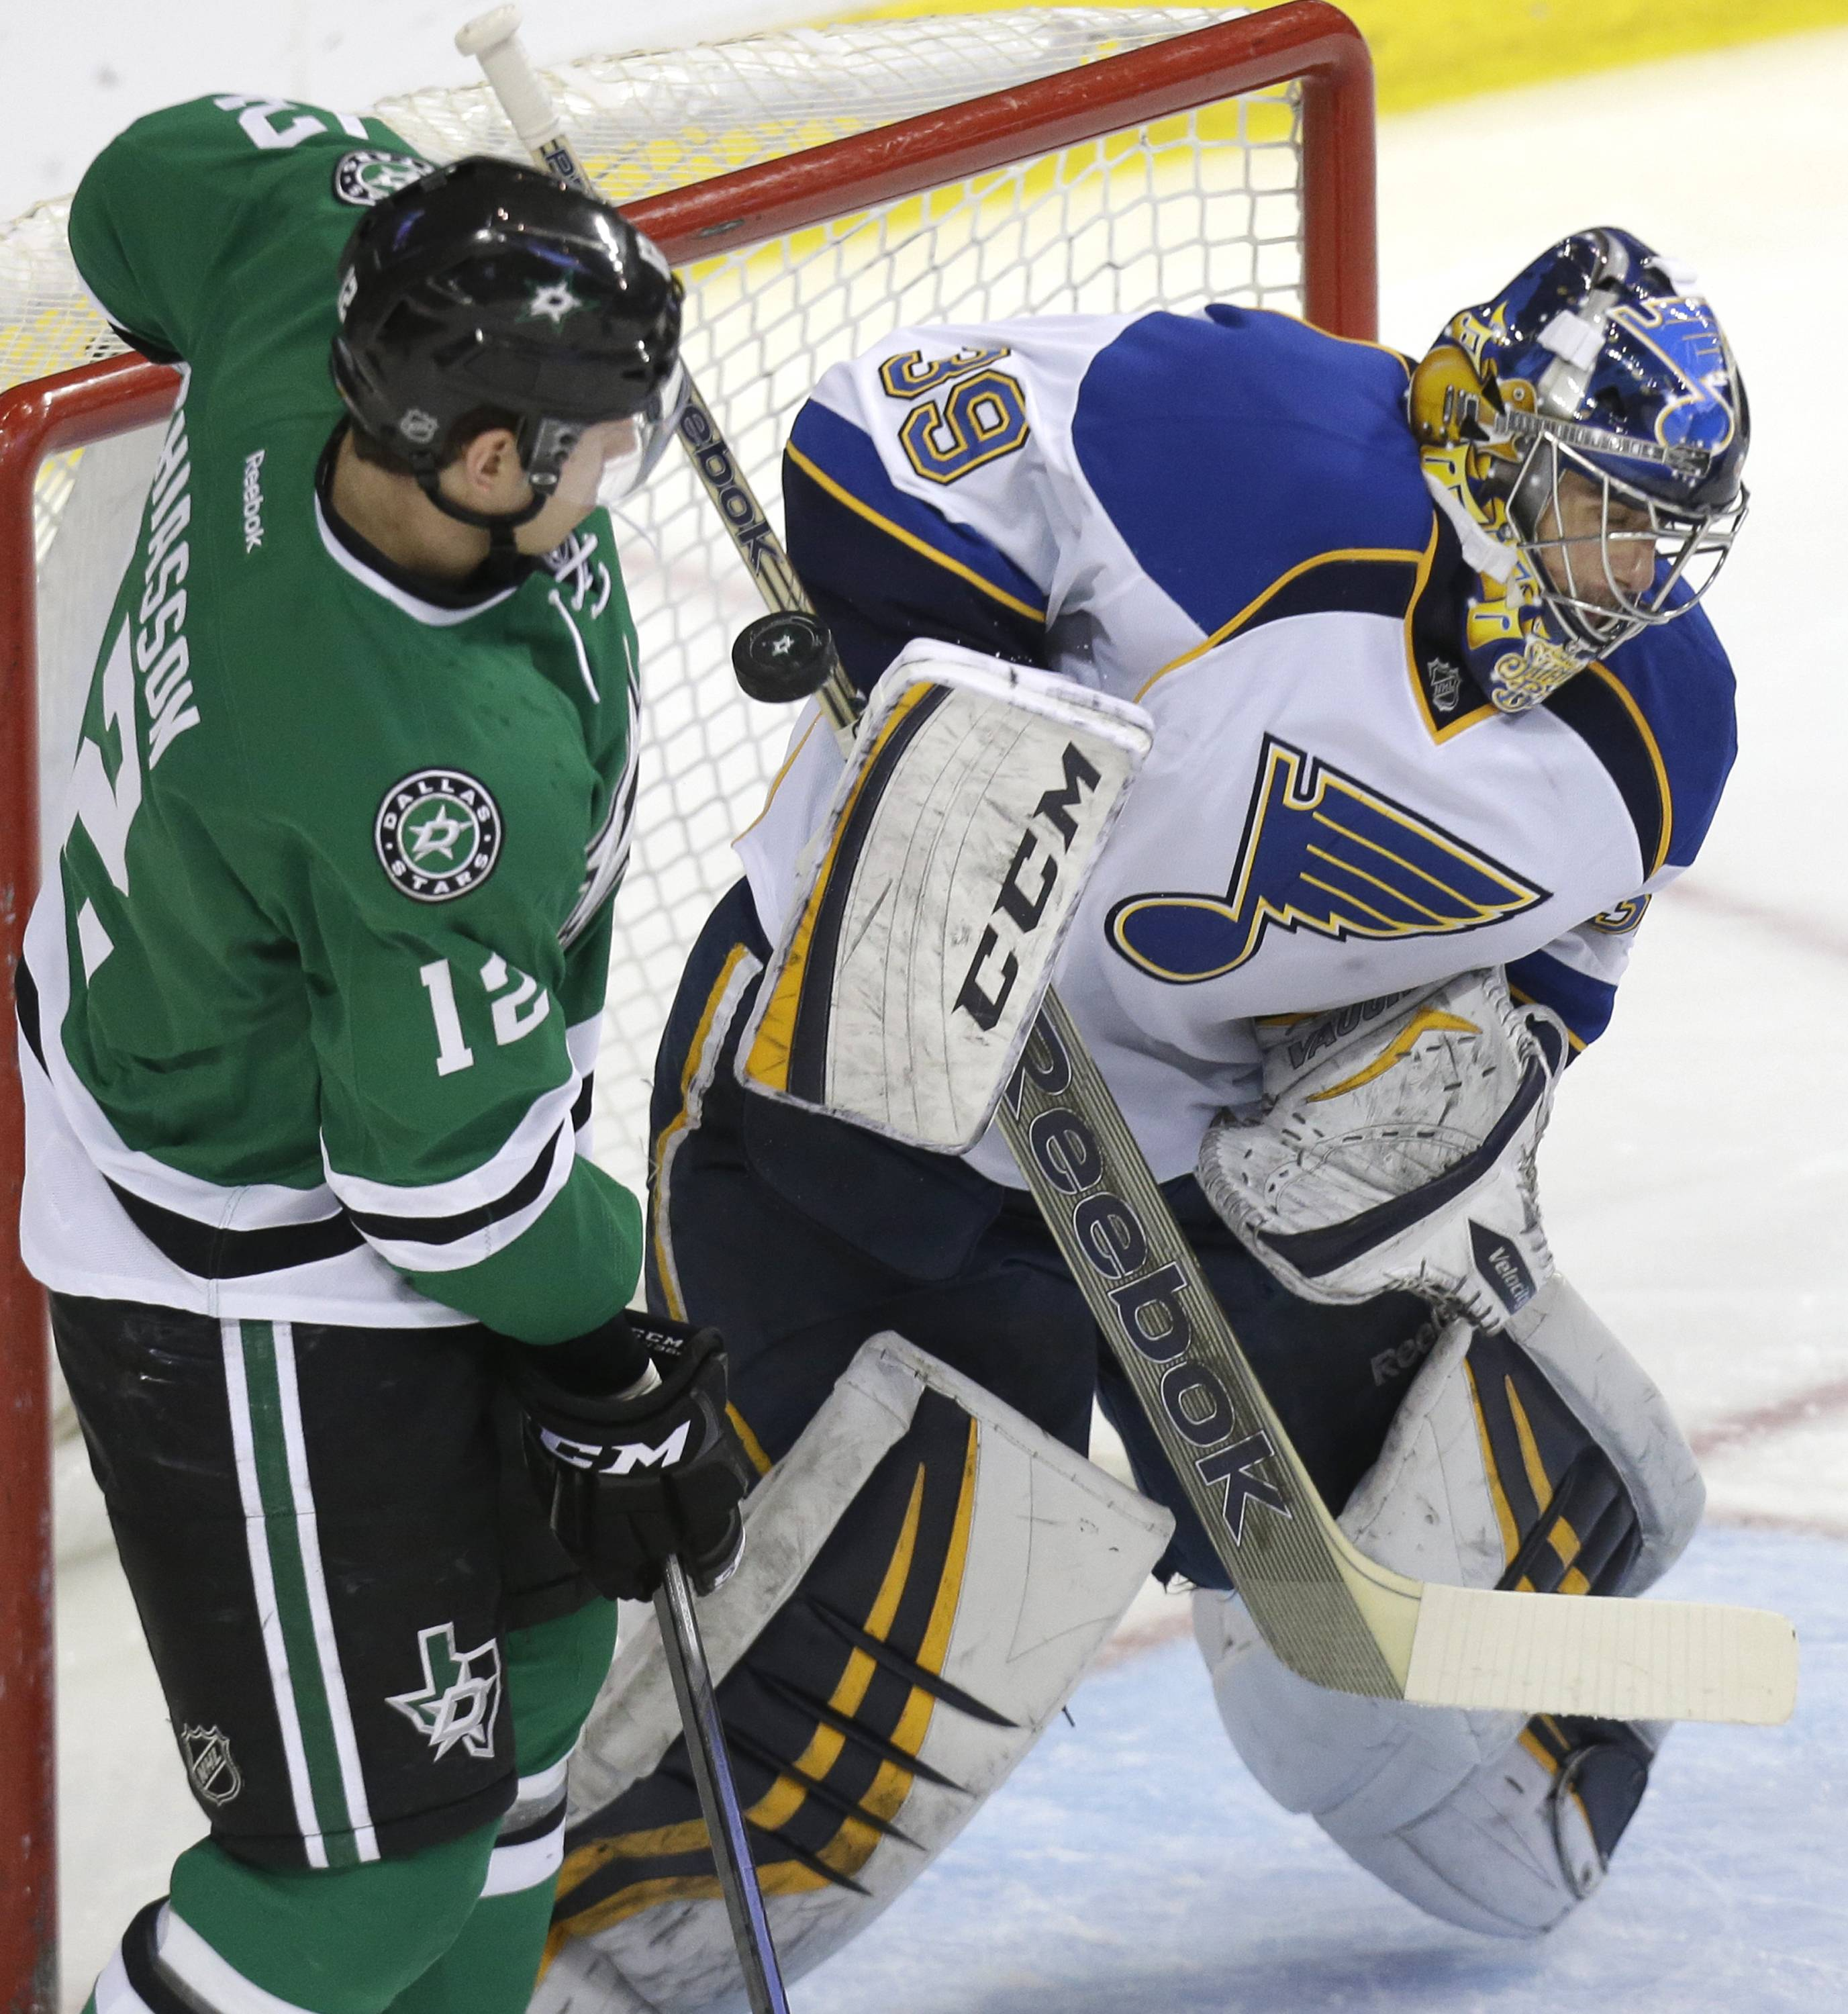 If Blues goalie Ryan Miller isn't brilliant, St. Louis will have a hard time scoring enough to match the Blackhawks' offense.